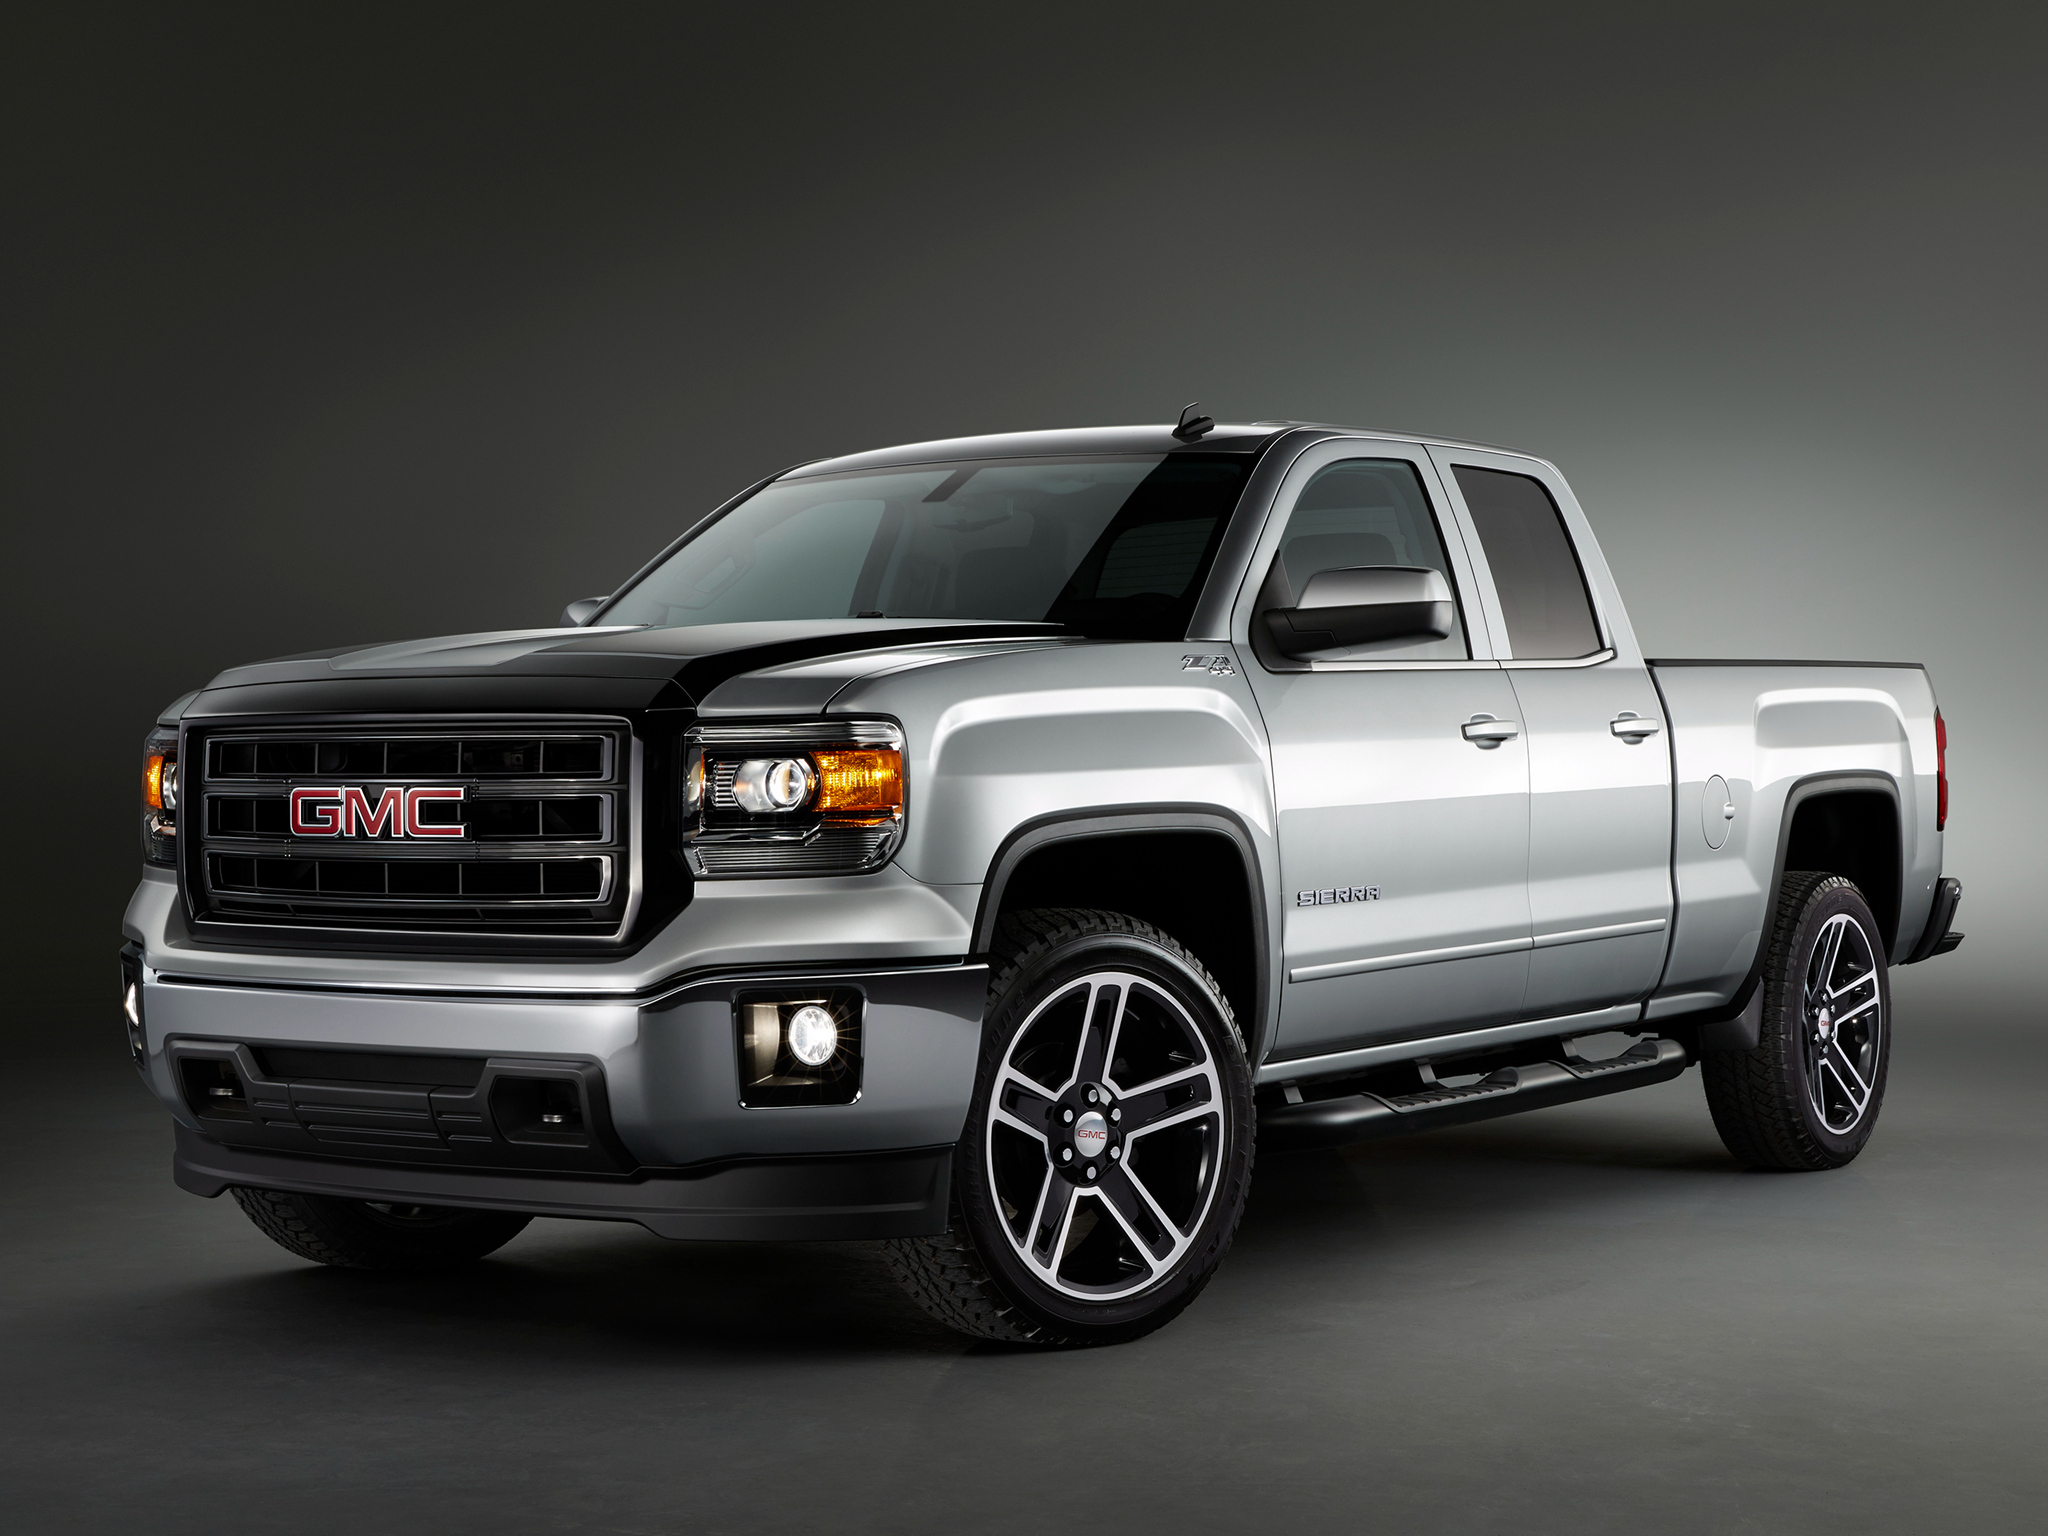 cars sierra first new photo reviews gmc feature car review for and hd s driver original drive